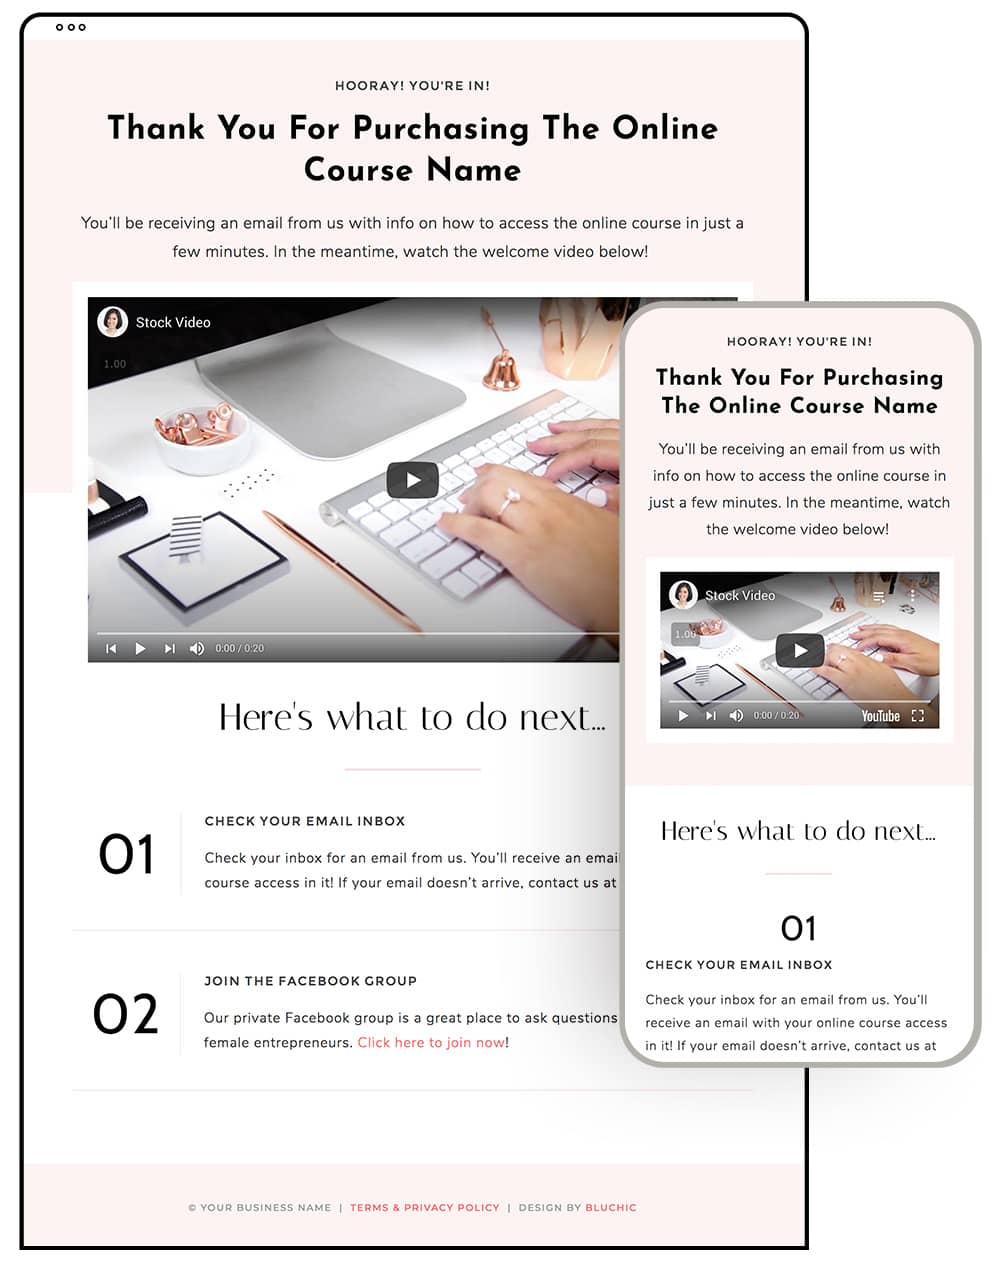 mockup-online-course-thank-you-1